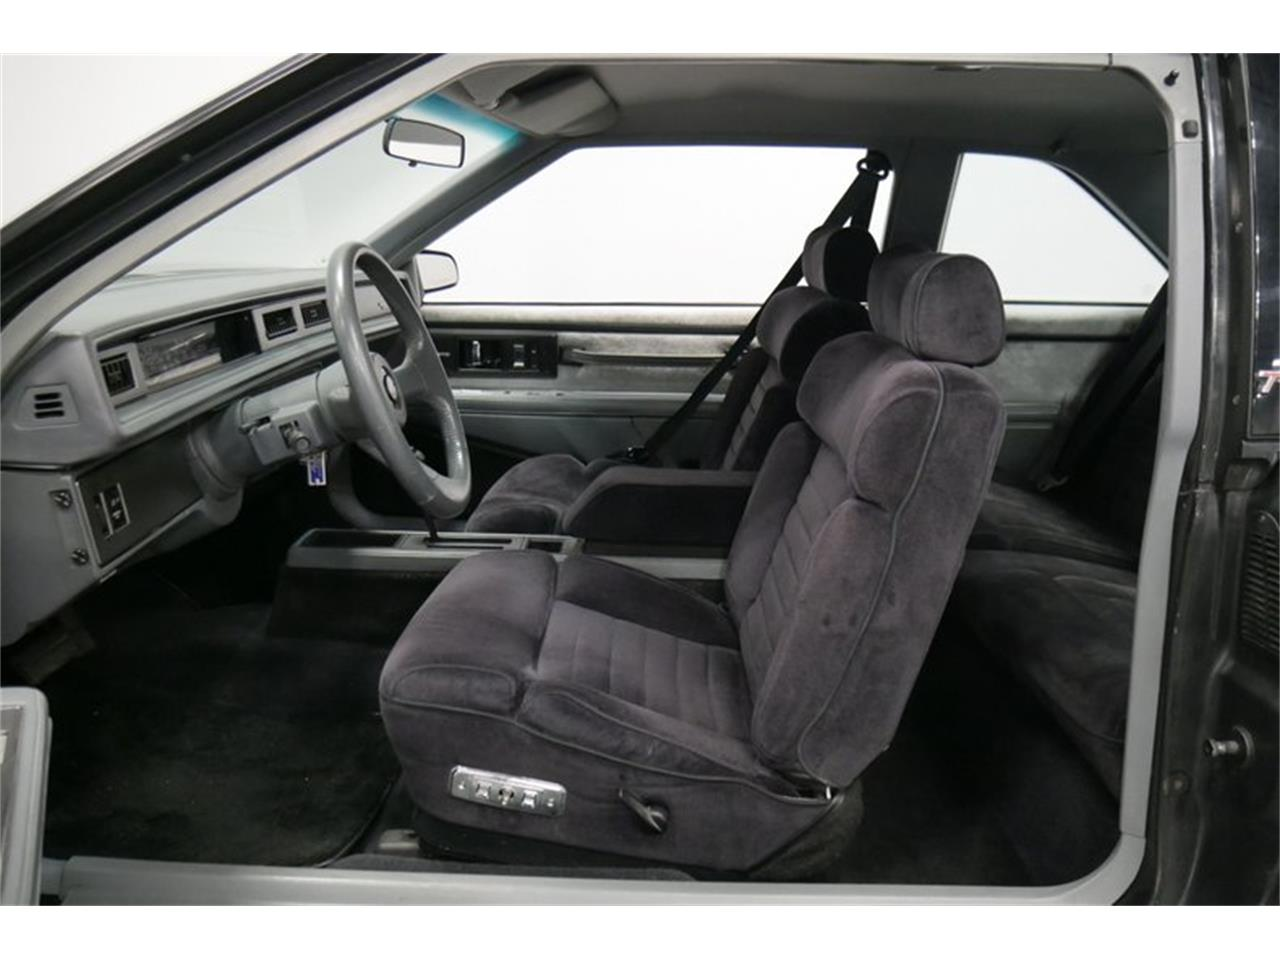 Large Picture of 1989 Buick LeSabre located in Tennessee Offered by Streetside Classics - Nashville - QRKK